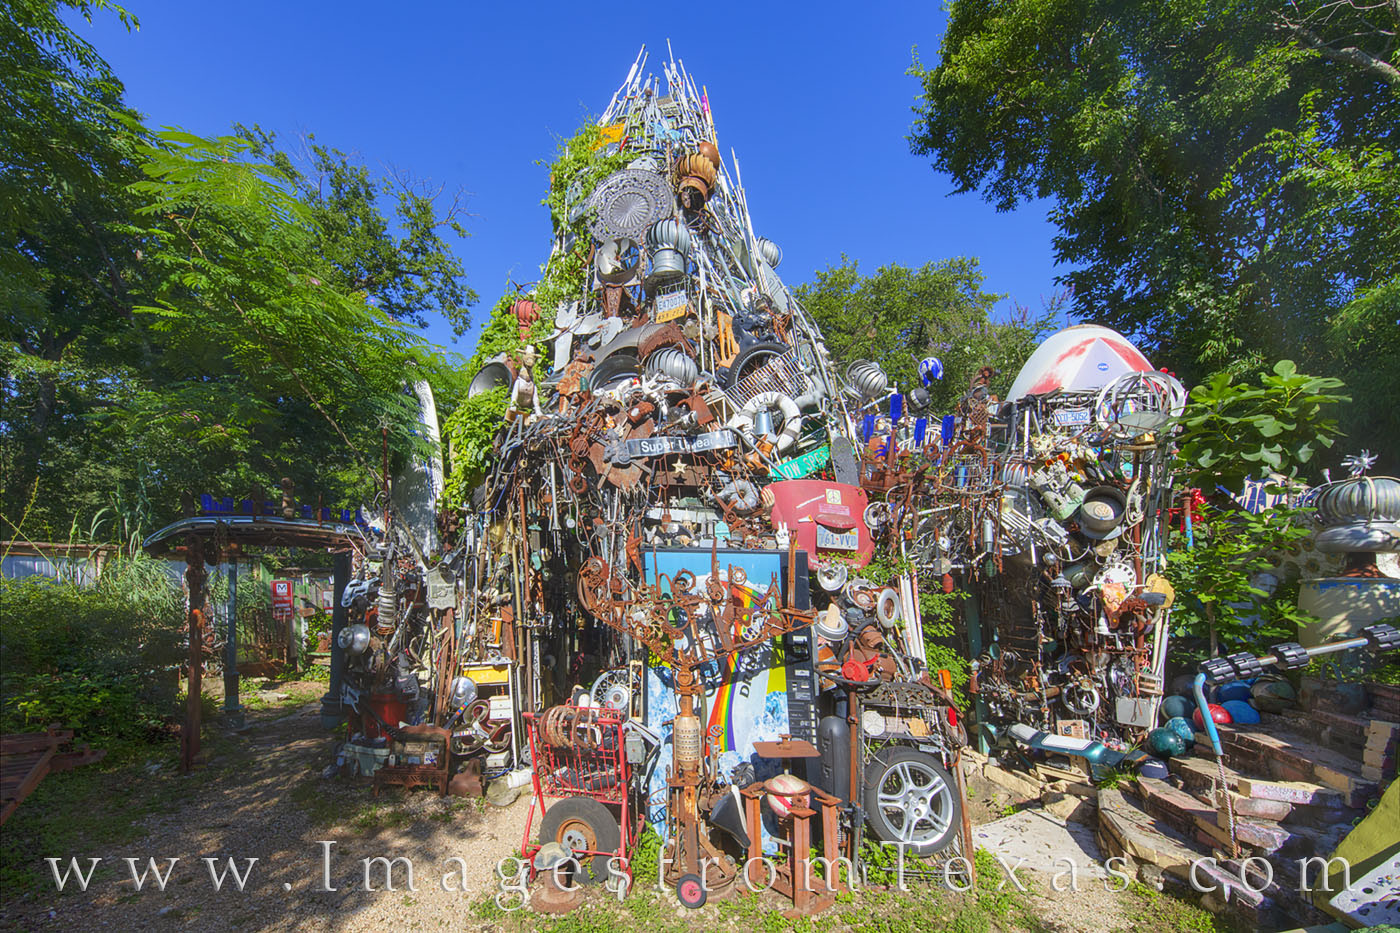 Vincent Hannemann started his creation, Cathedral of Junk, back in 1987. Now the tower of scrap is one of south Austin's iconic...